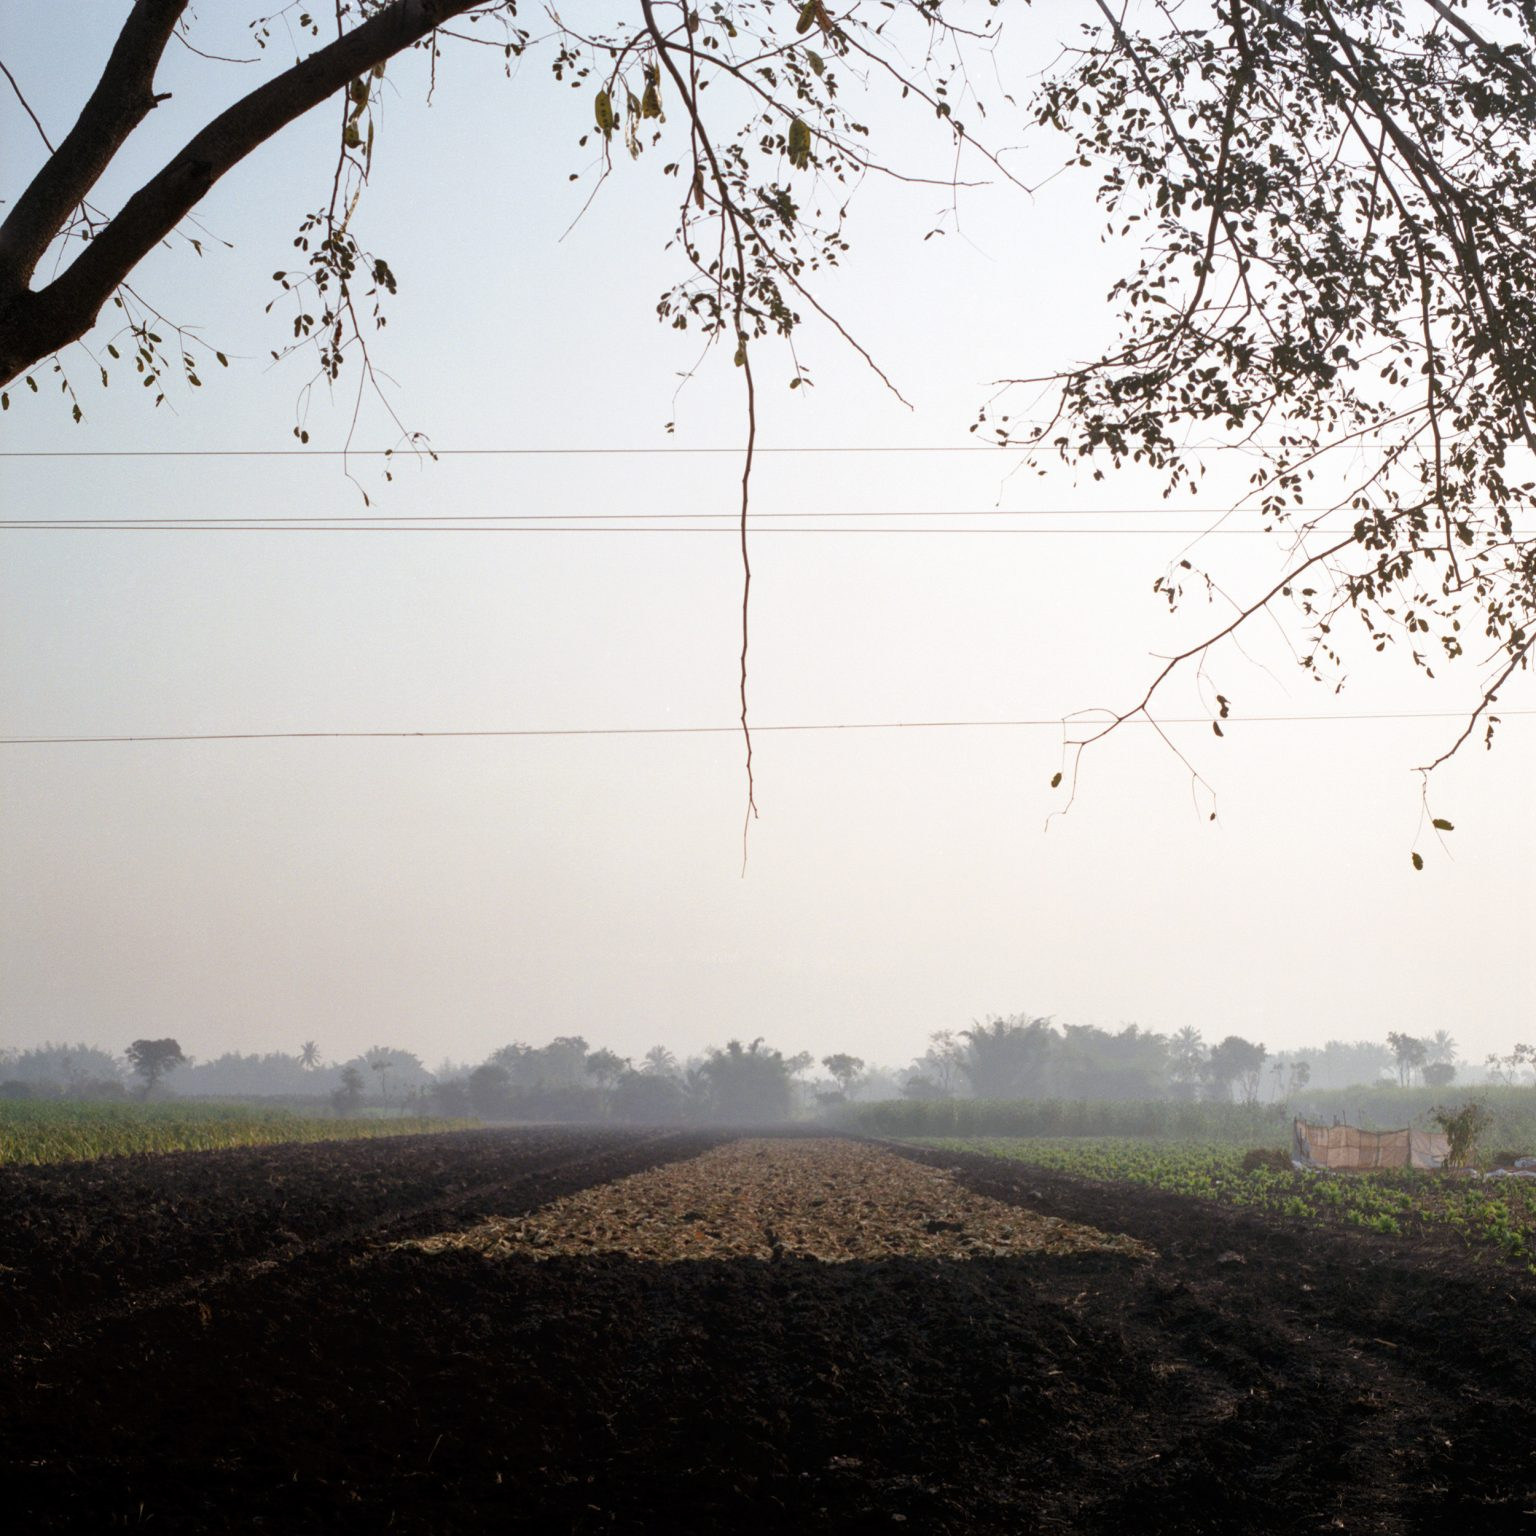 Harvested tobacco is drying in the fields. In Nipani, almost 70% of tax revenues derive from bidi tobacco. Here, 13000 ha are cultivated with bidi tobacco and 20000 people work as bidi rollers, contributing to 20% of India's bidi tobacco production. In India, some two million people are engaged in leaf collection and 4.4 million people employed directly in bidi rolling. The informal, cottage-linked nature of this industry prevents workers from being organized in large, poweerful unions.  In addition, bidi tobacco is not regulated by any governmental institution and prices are controlled only by dealers. For these reasons, bidi tobacco is less remunerative for farmers than the Virginia flue-cured variety, used for cigarettes. © Rocco Rorandelli